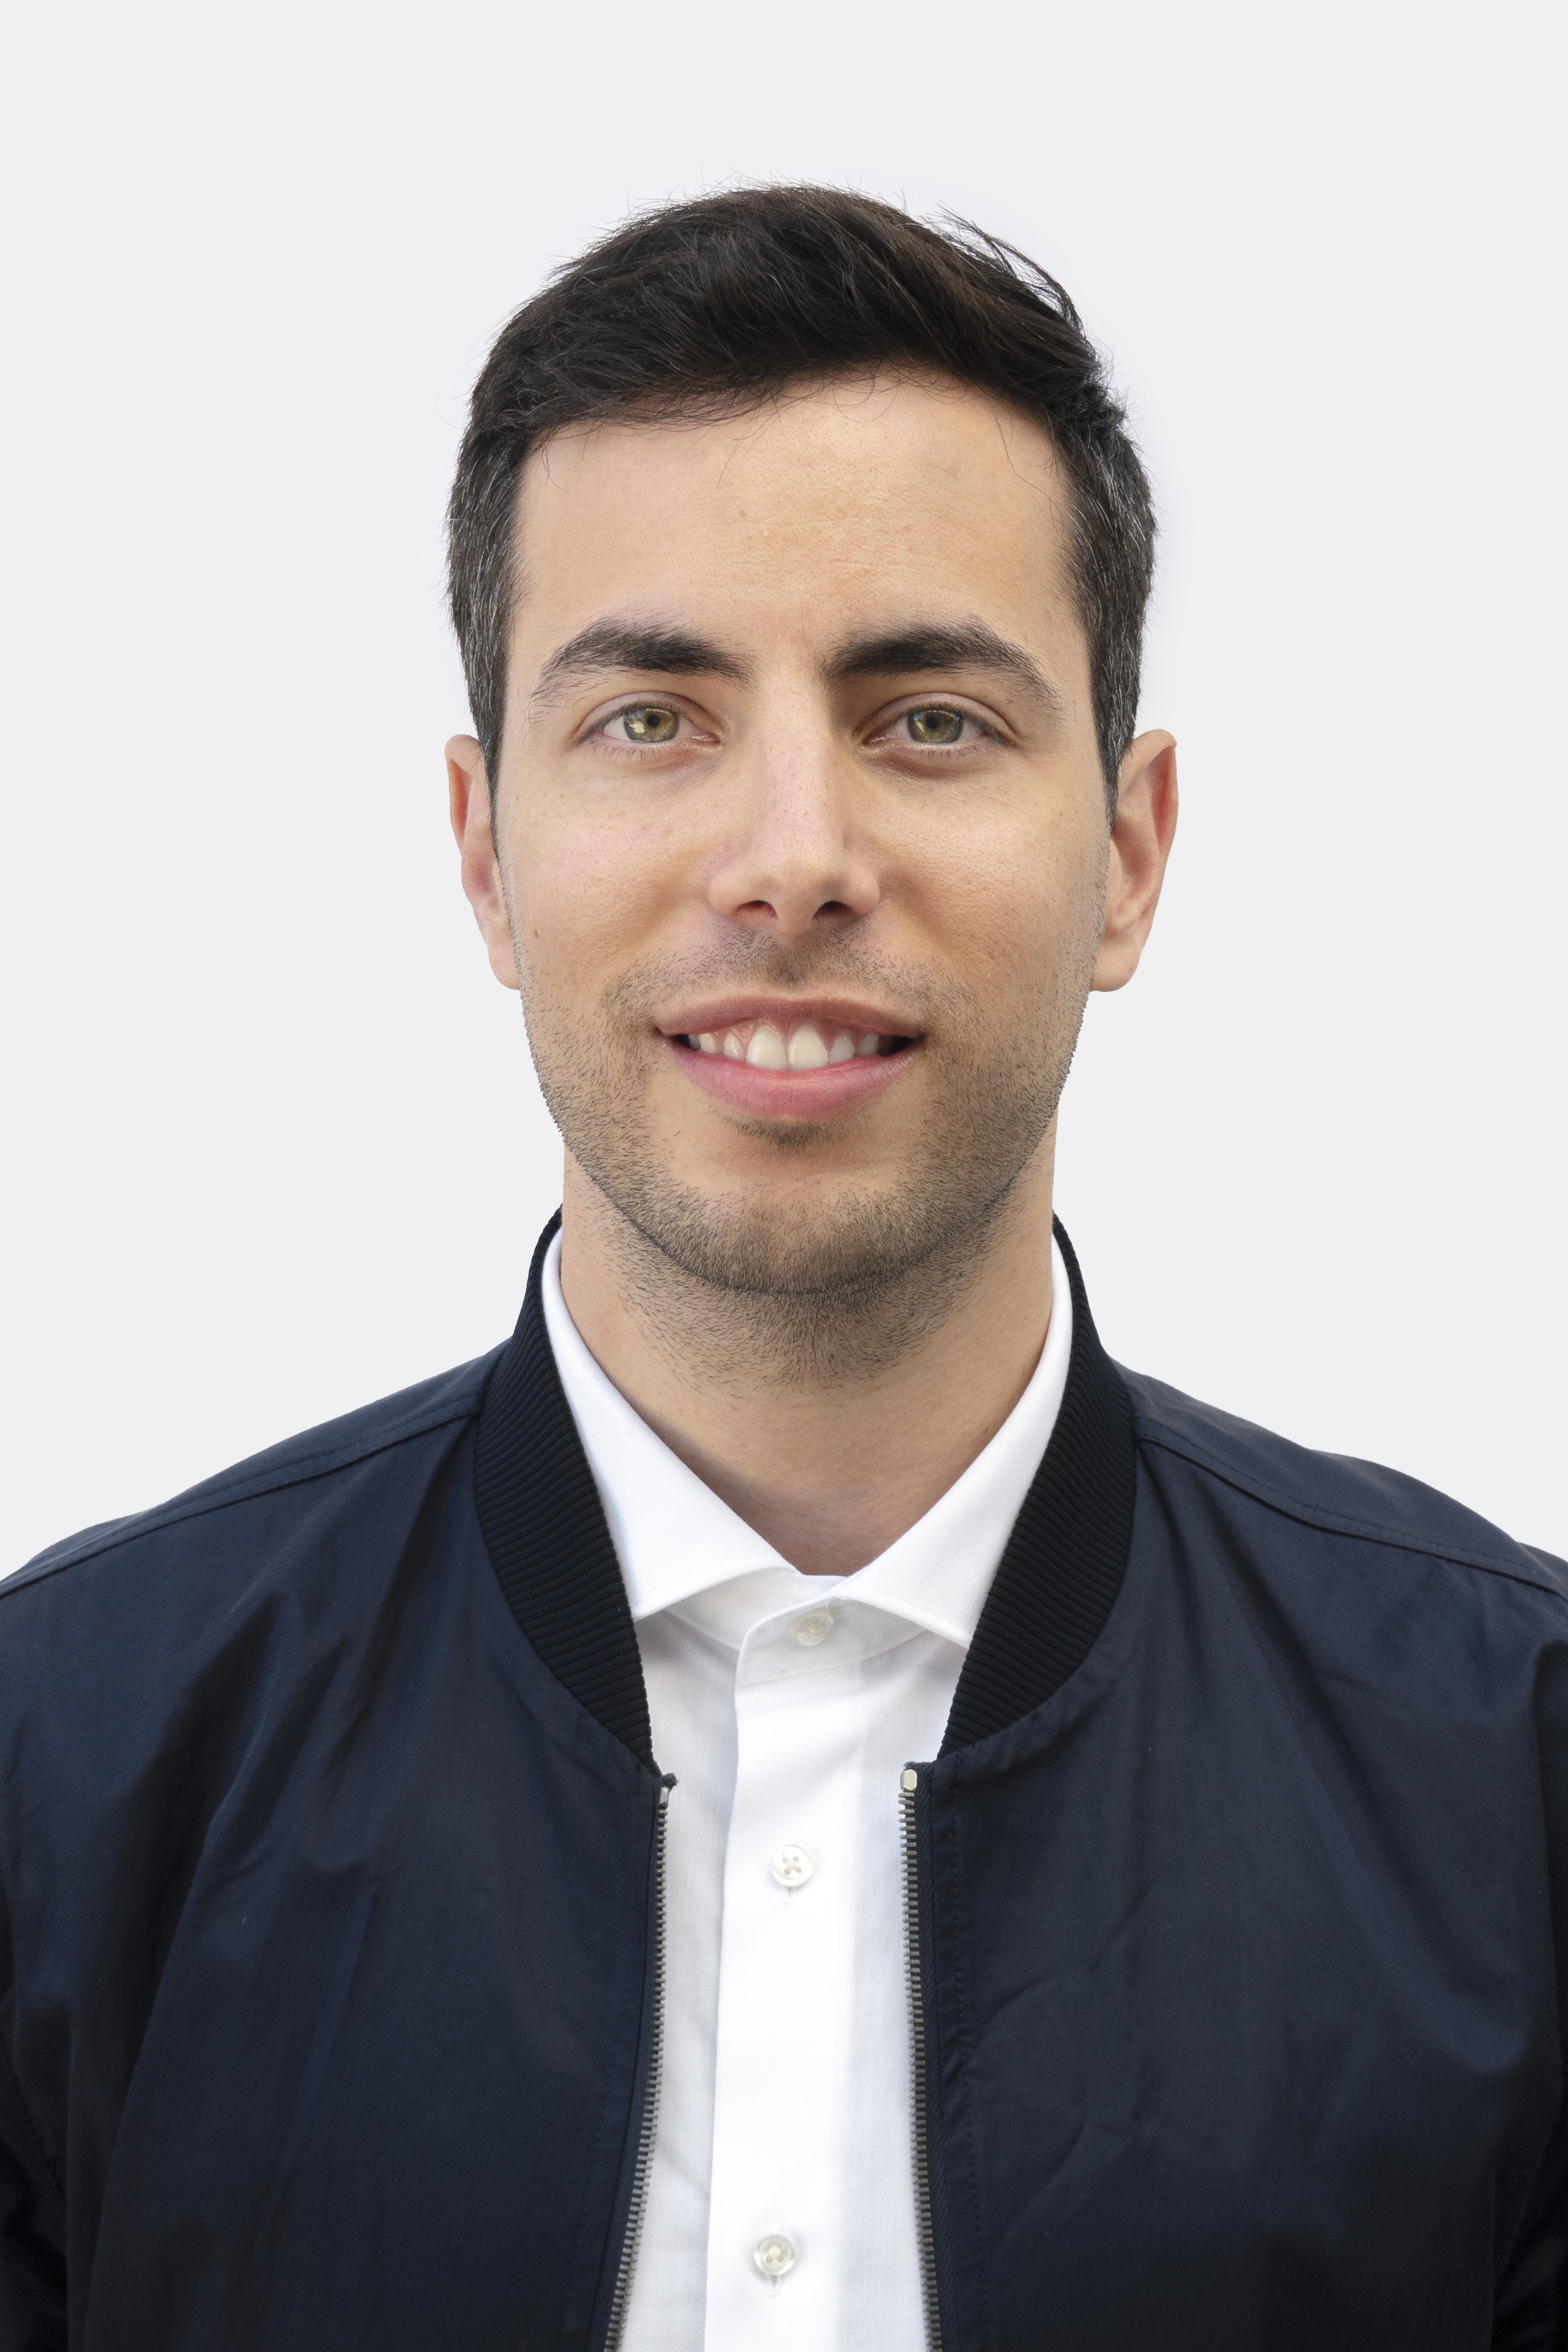 Noam Saragosti Project Manager  Noam Saragosti joined Charlap Hyman & Herrero's Los Angeles office as a designer in 2018. He received his architectural training at the Harvard Graduate School of Design and at Cal Poly Pomona University. Noam concurrently lectures at Cal Poly Pomona.